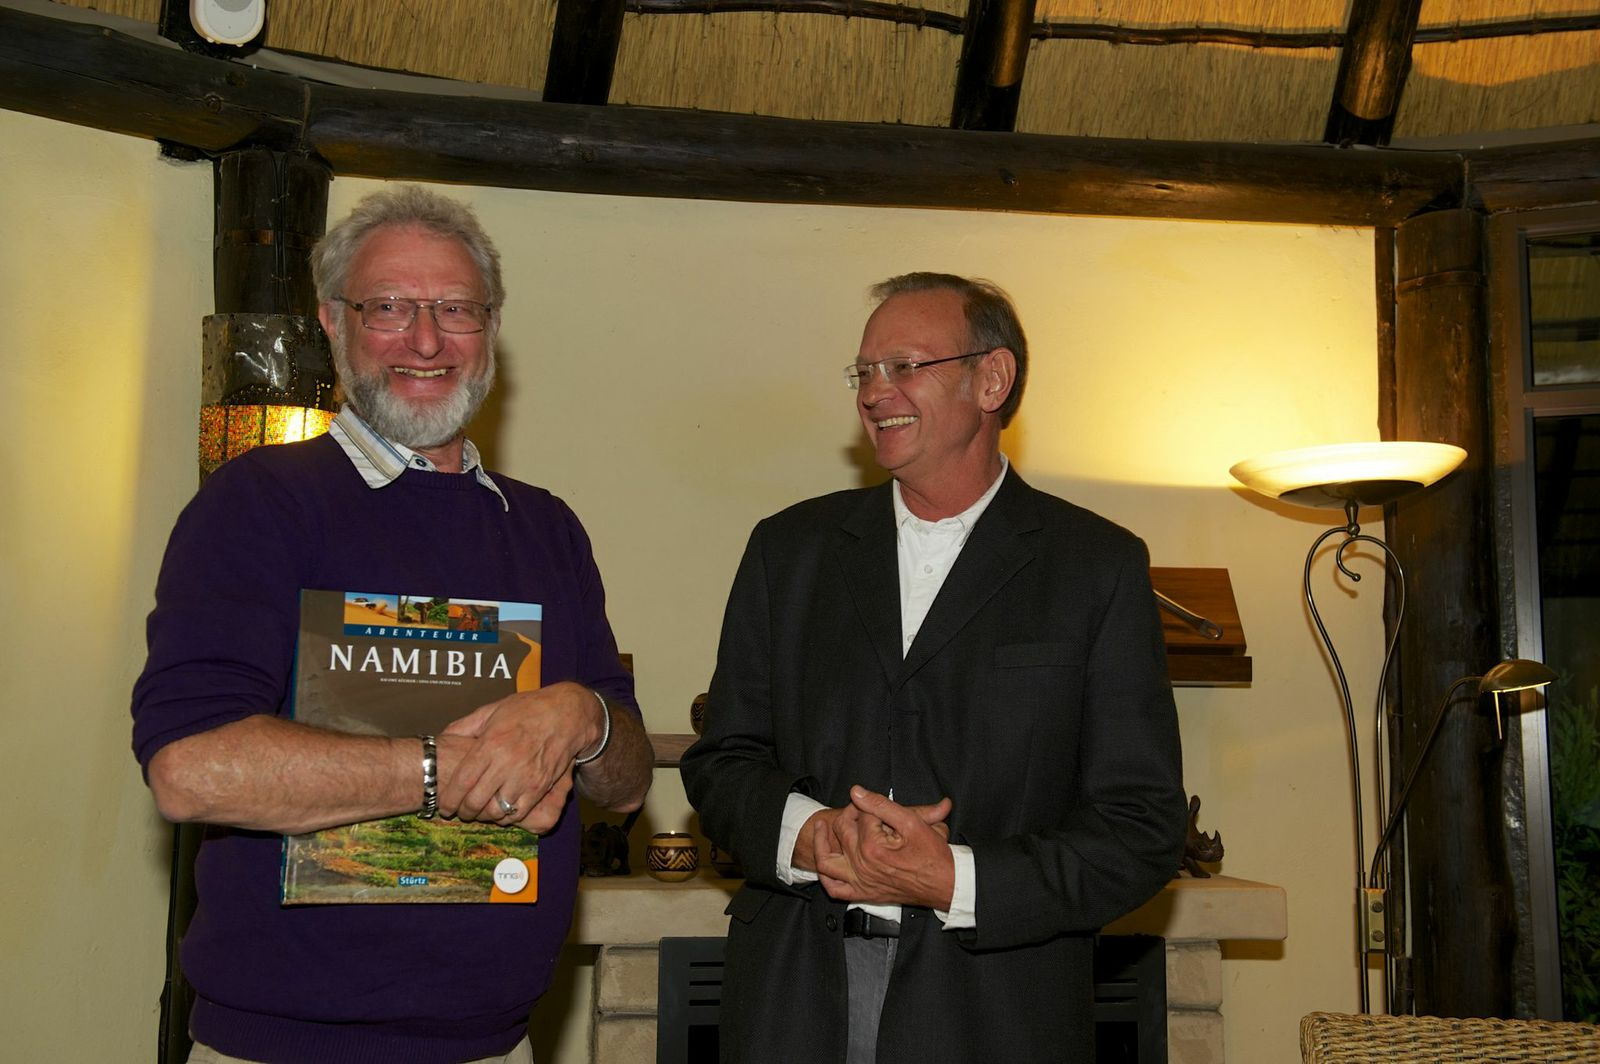 Receiving a gift at his farewell bash